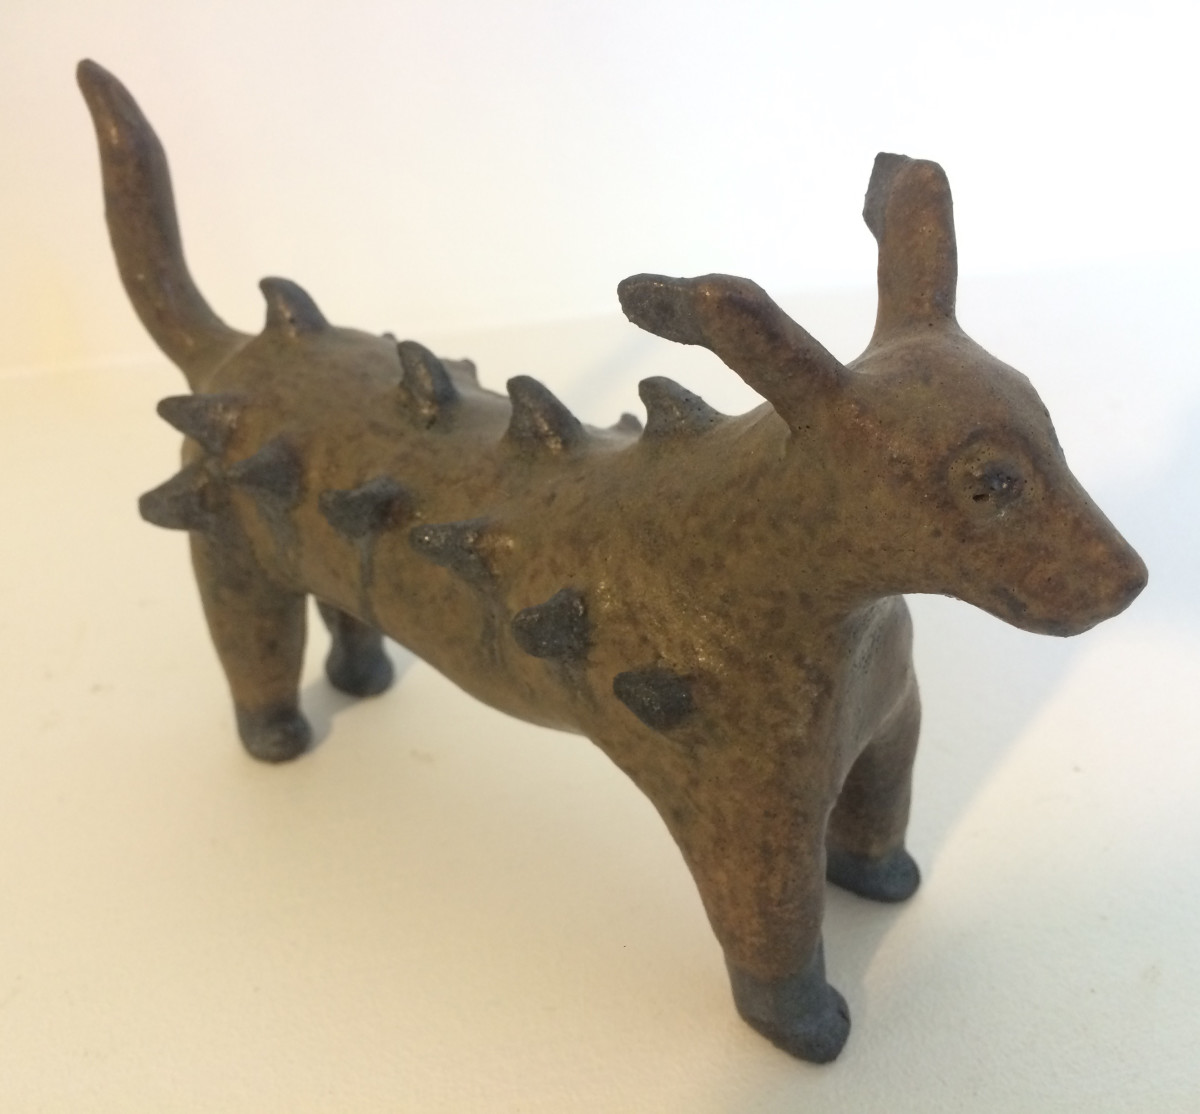 Sadie the tufted dog (sold) by Nell Eakin